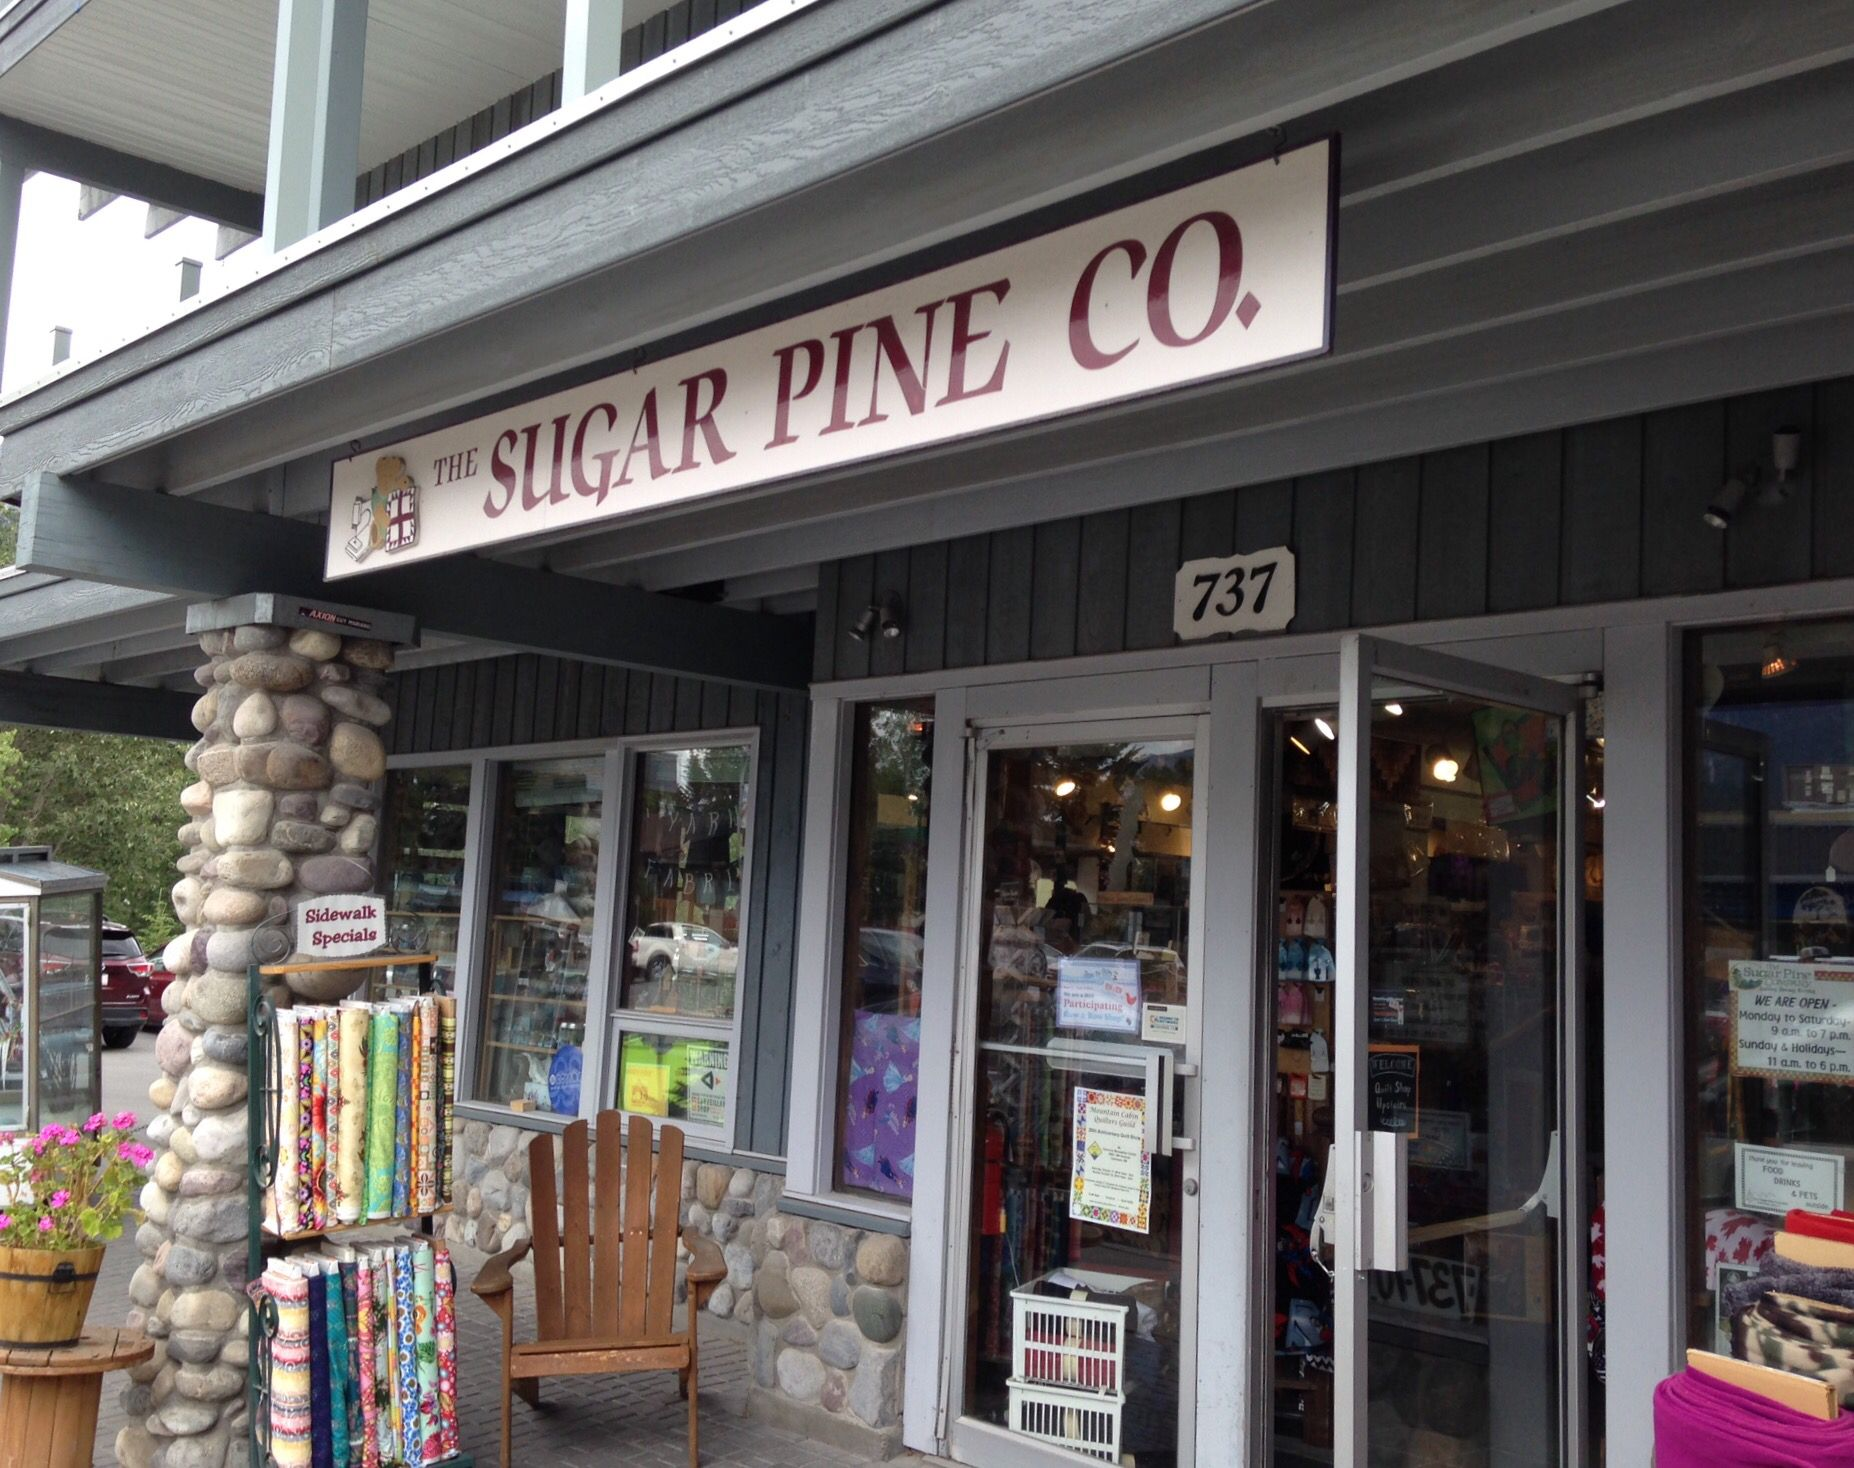 The Sugar Pine Company, Canmore, Alberta, Canada. Row by Row stop ... : sugar pine quilt shop - Adamdwight.com